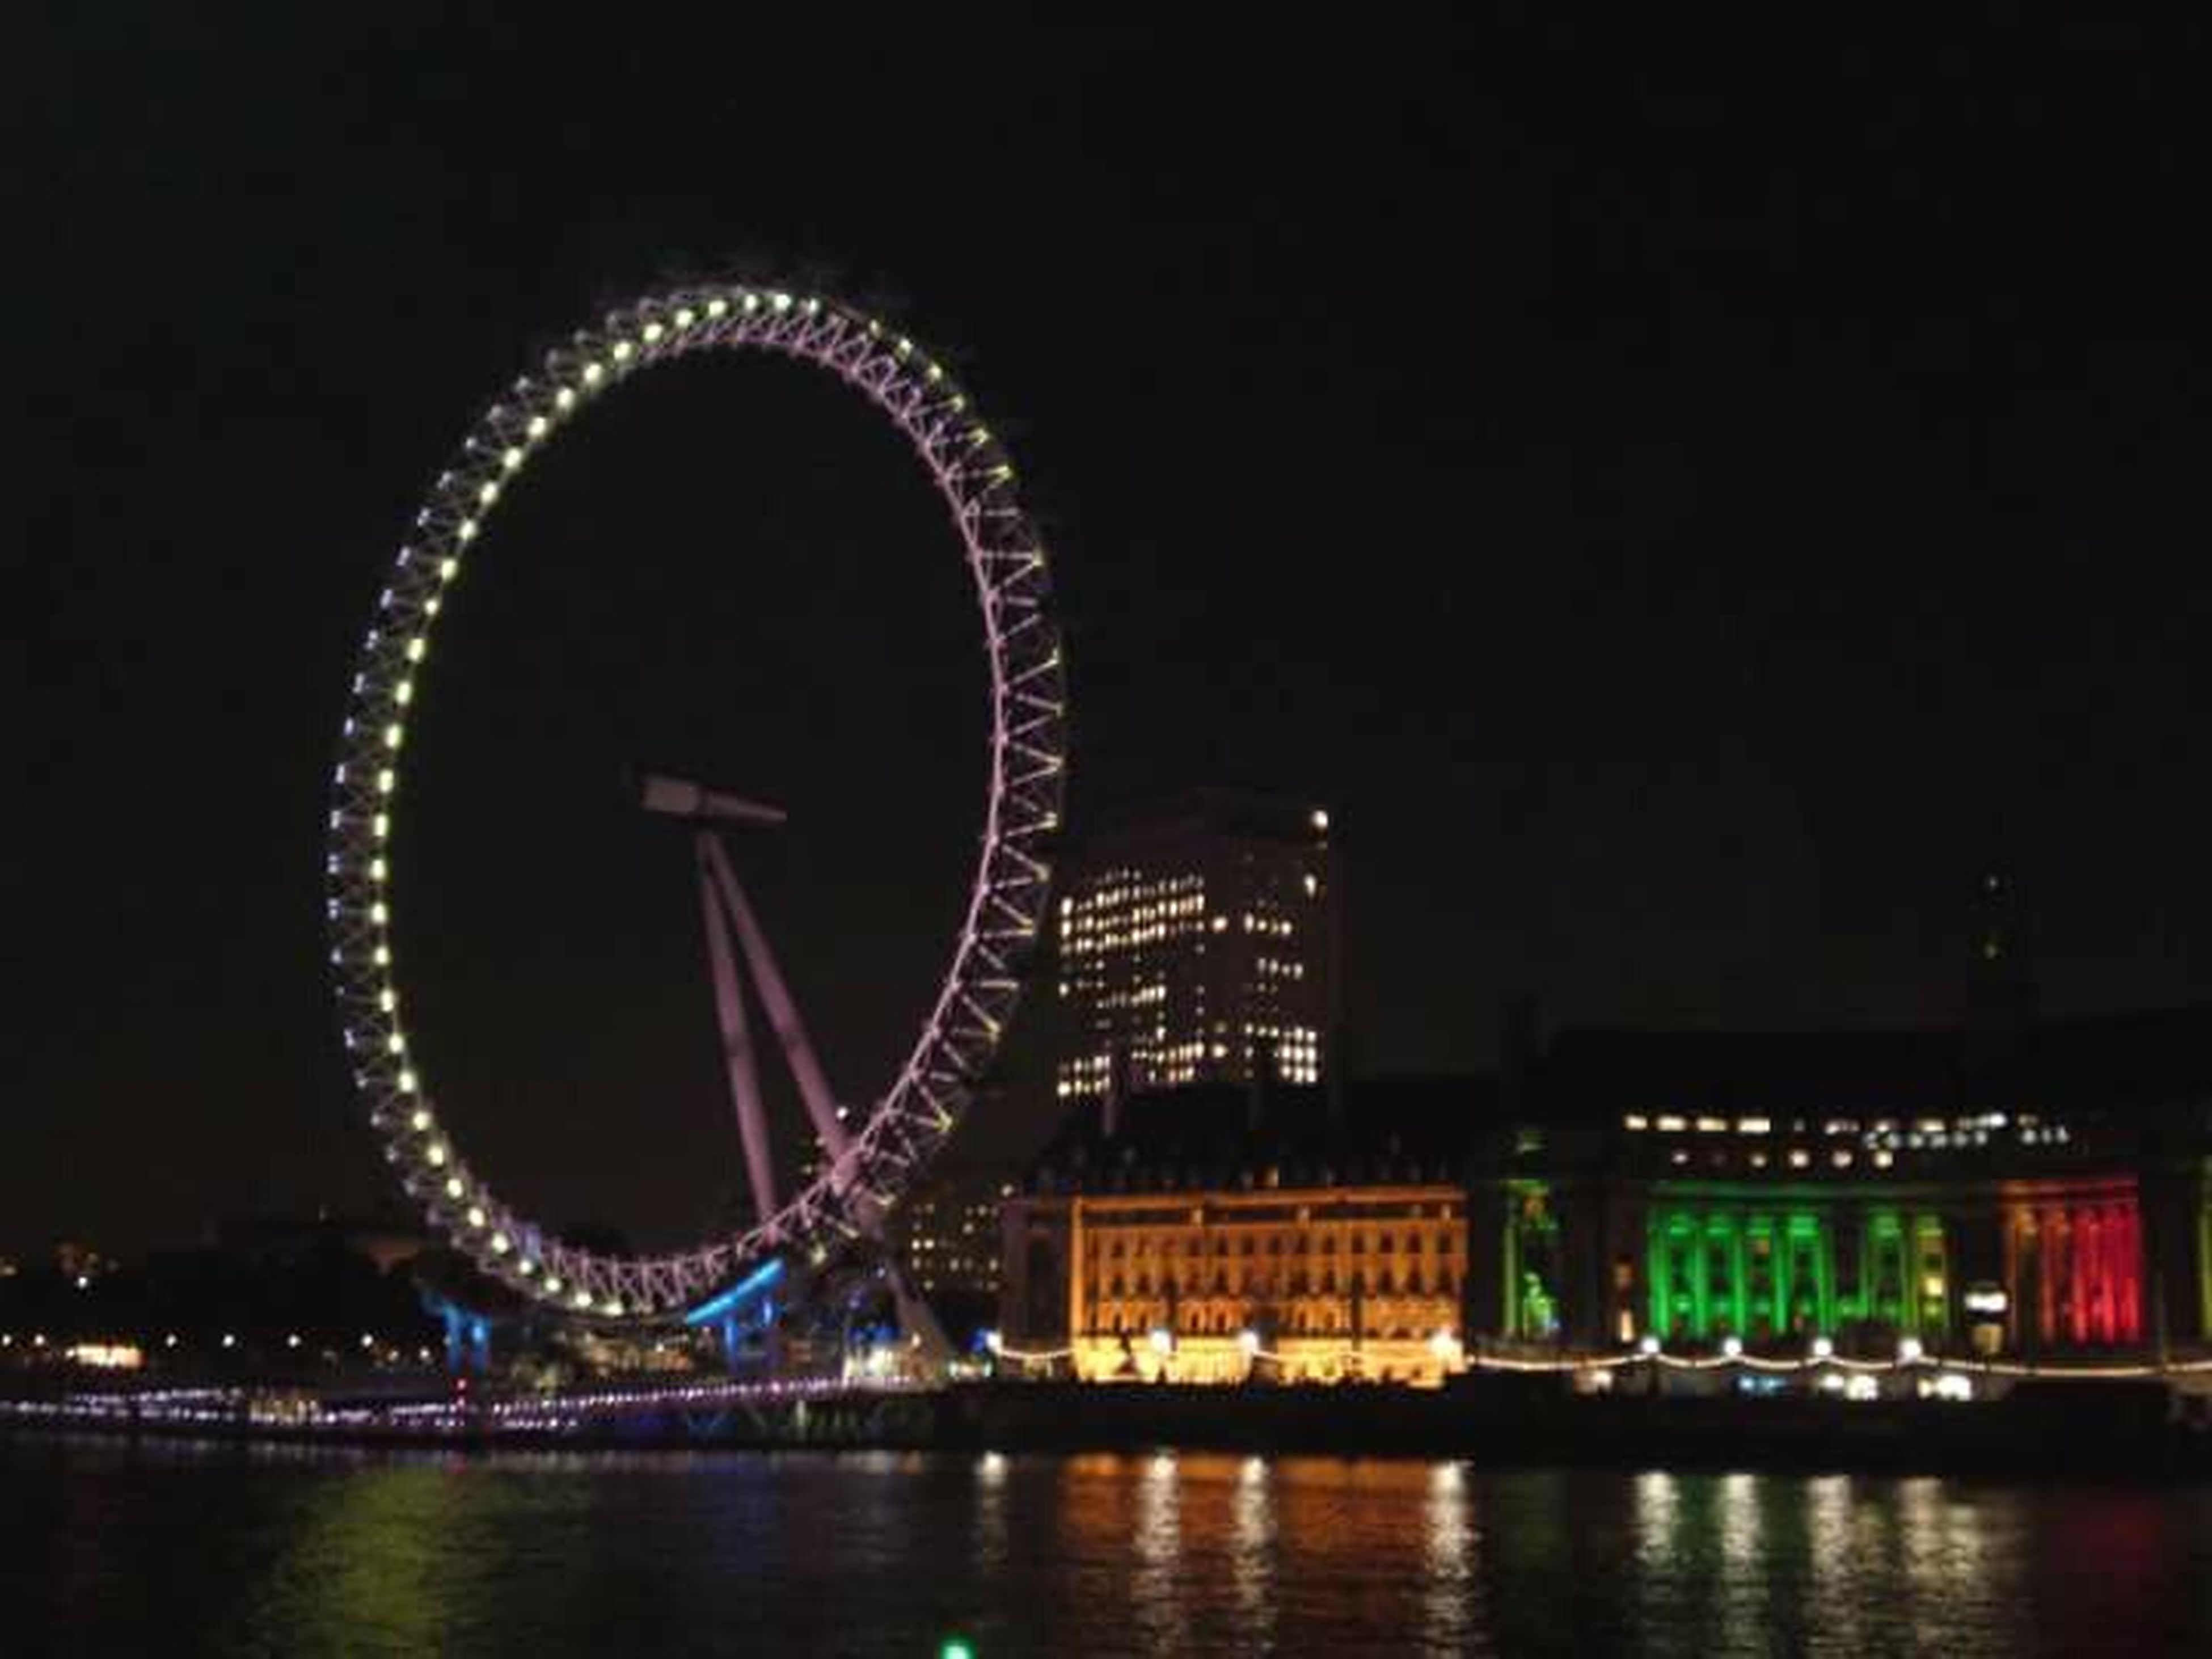 illuminated, night, built structure, architecture, building exterior, water, river, arts culture and entertainment, waterfront, city, ferris wheel, reflection, travel destinations, sky, amusement park, clear sky, lighting equipment, glowing, copy space, famous place